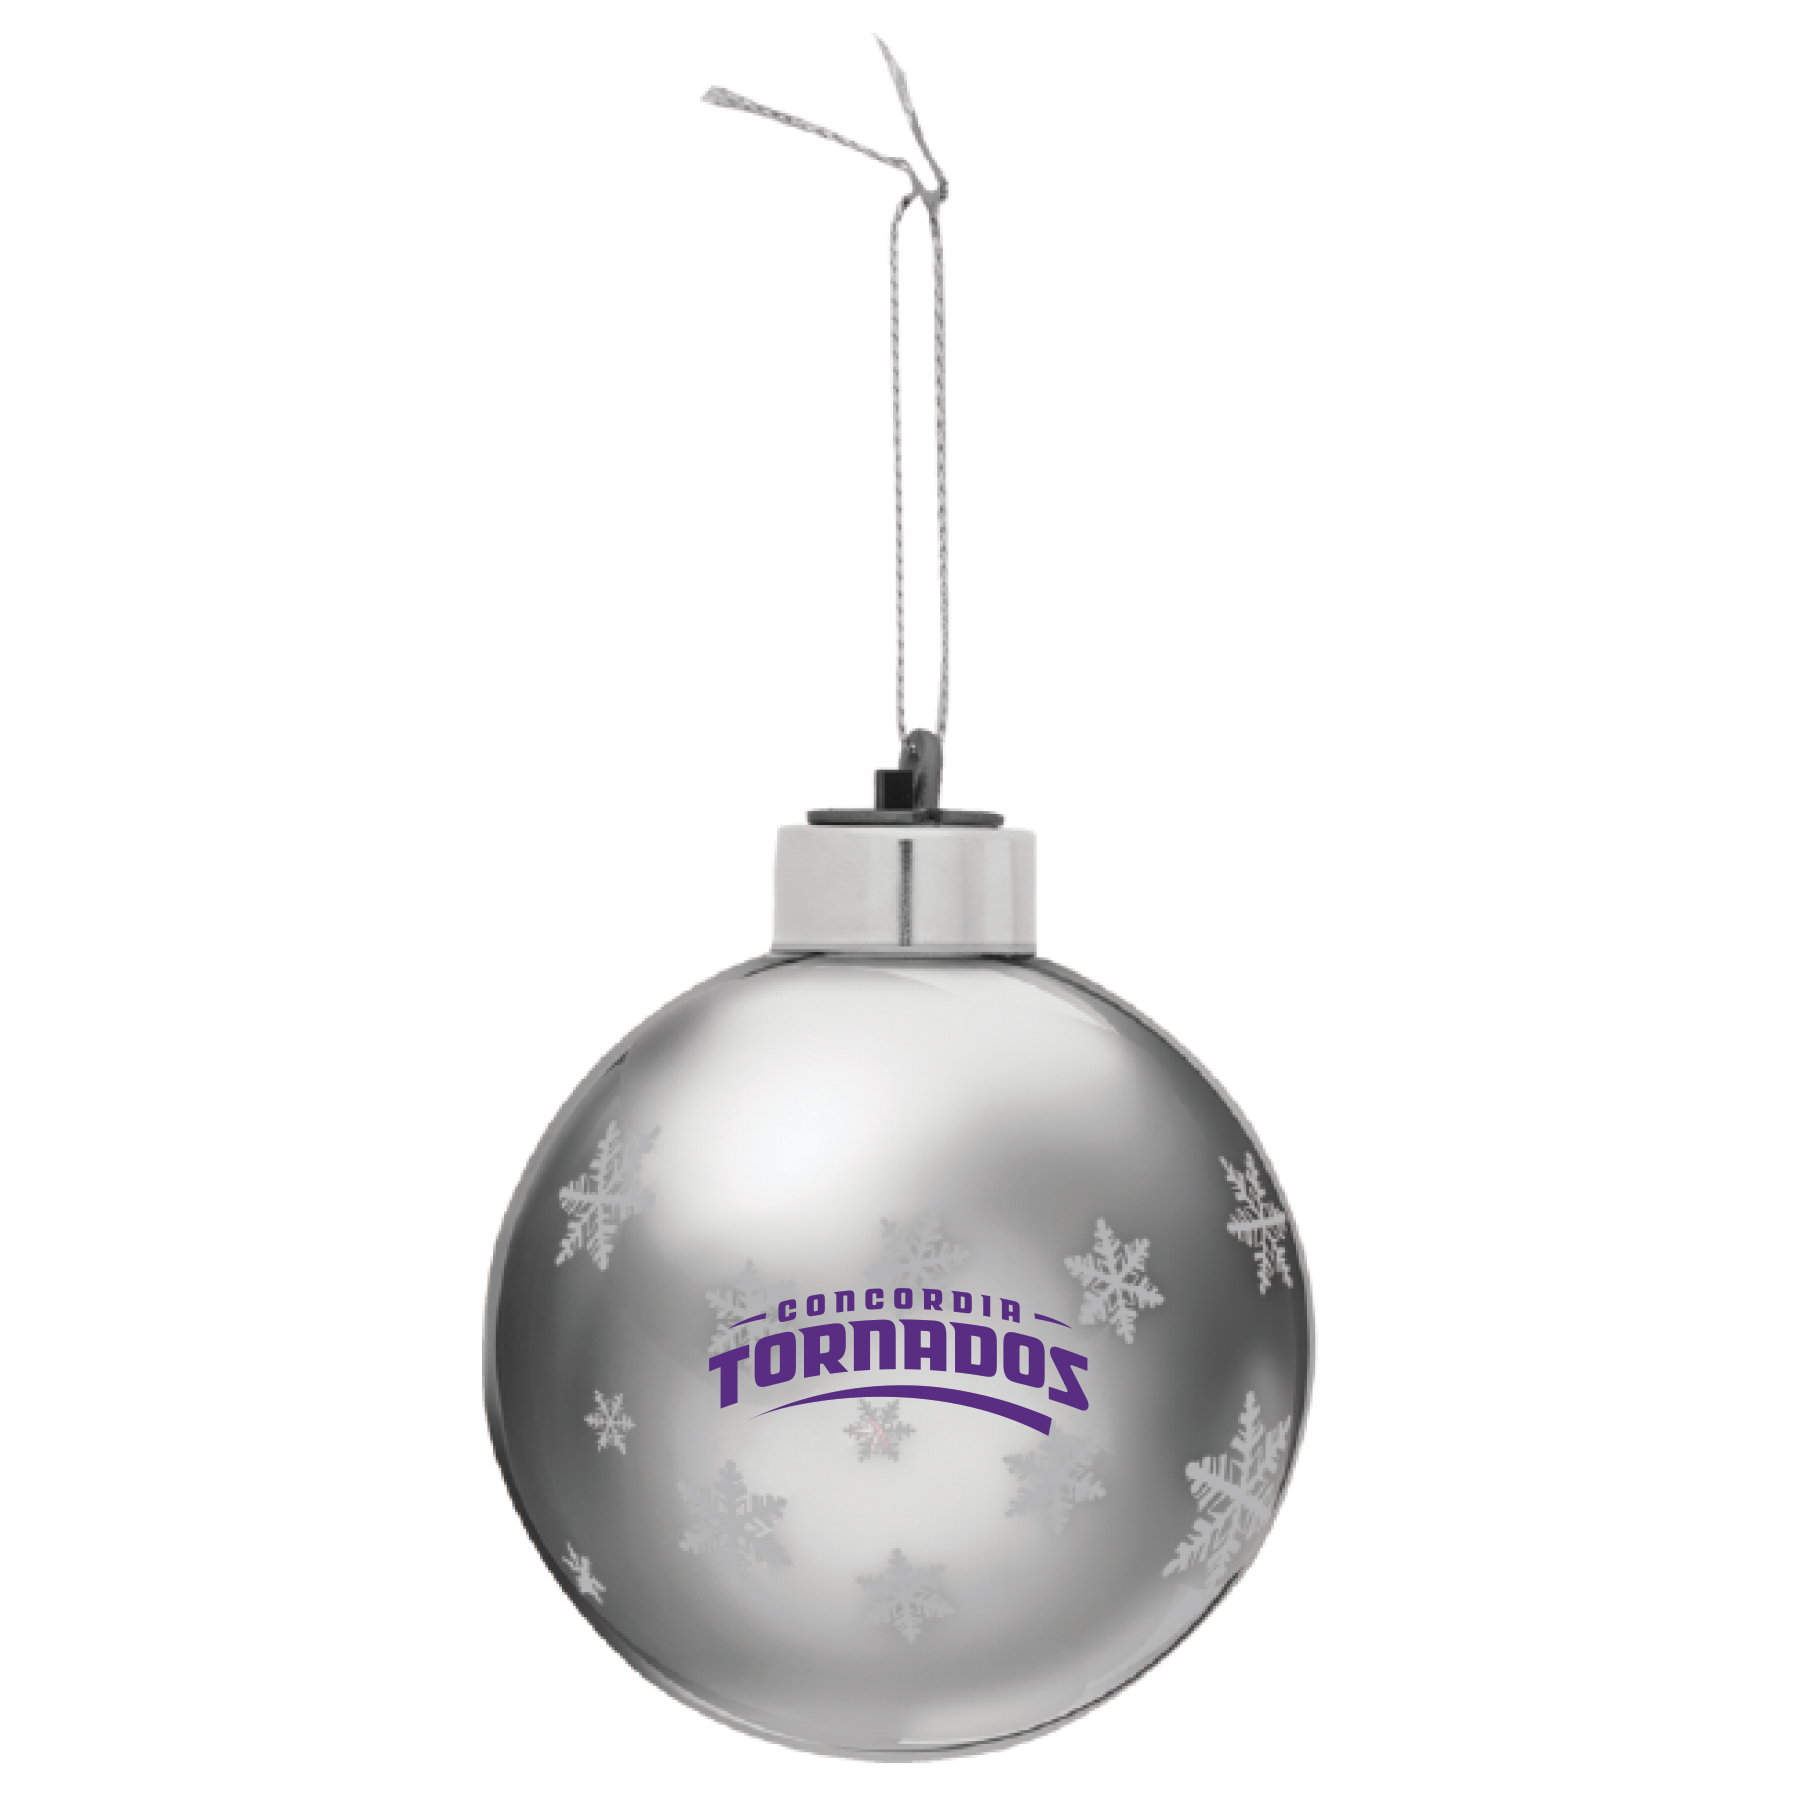 Tornados Light-Up Glass Ornament - Silver